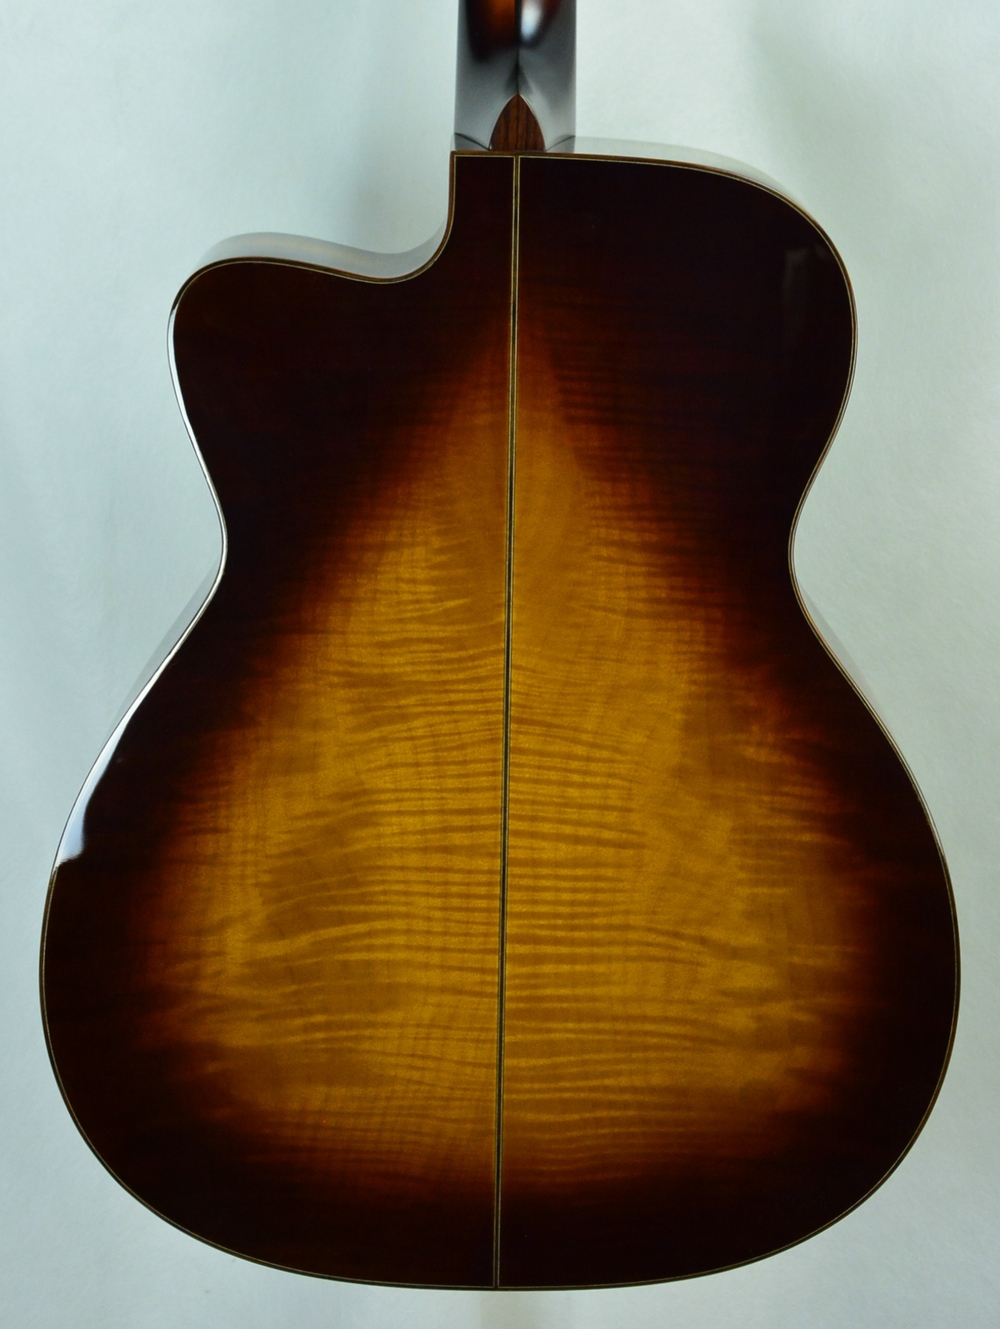 Q-2352524 S-1801530 MC Big Leaf Maple Sitka Ambertone Teardrop (4).JPG